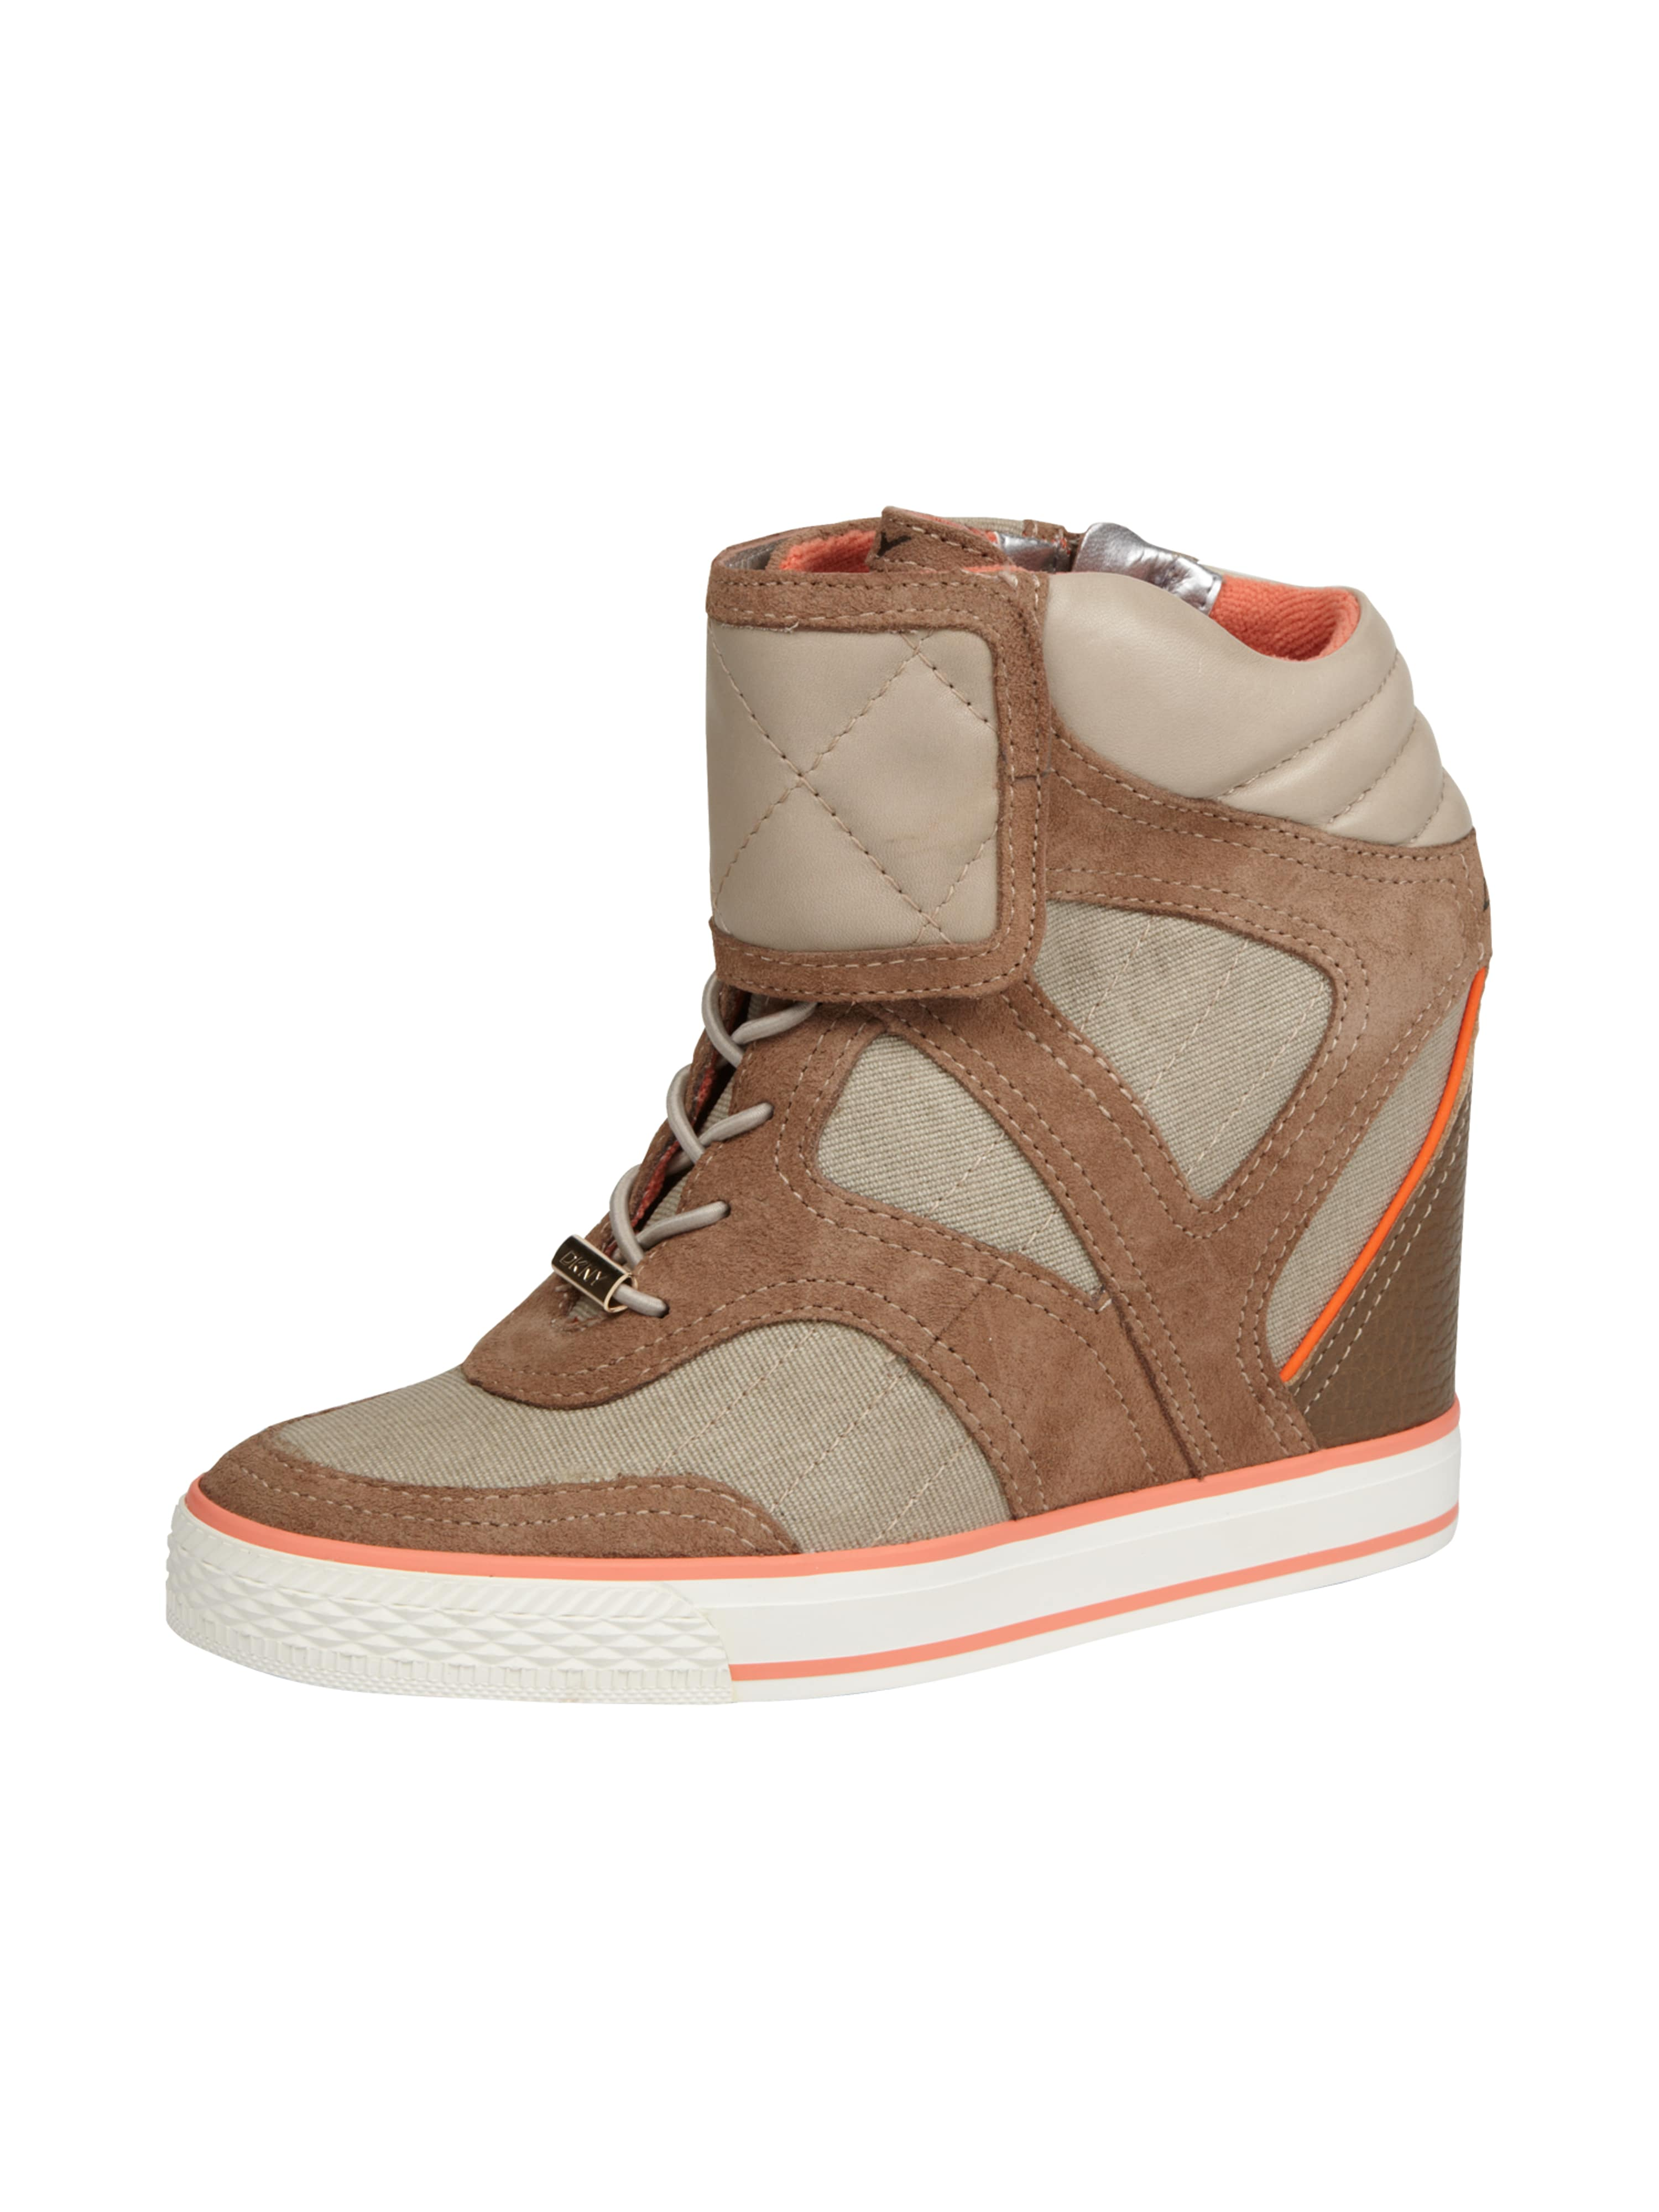 Buy wedge sneakers online in India at rutor-org.ga Select from a large variety of wedge sneakers and get free shipping, cash on delivery & 15 days return on wedge sneakers .